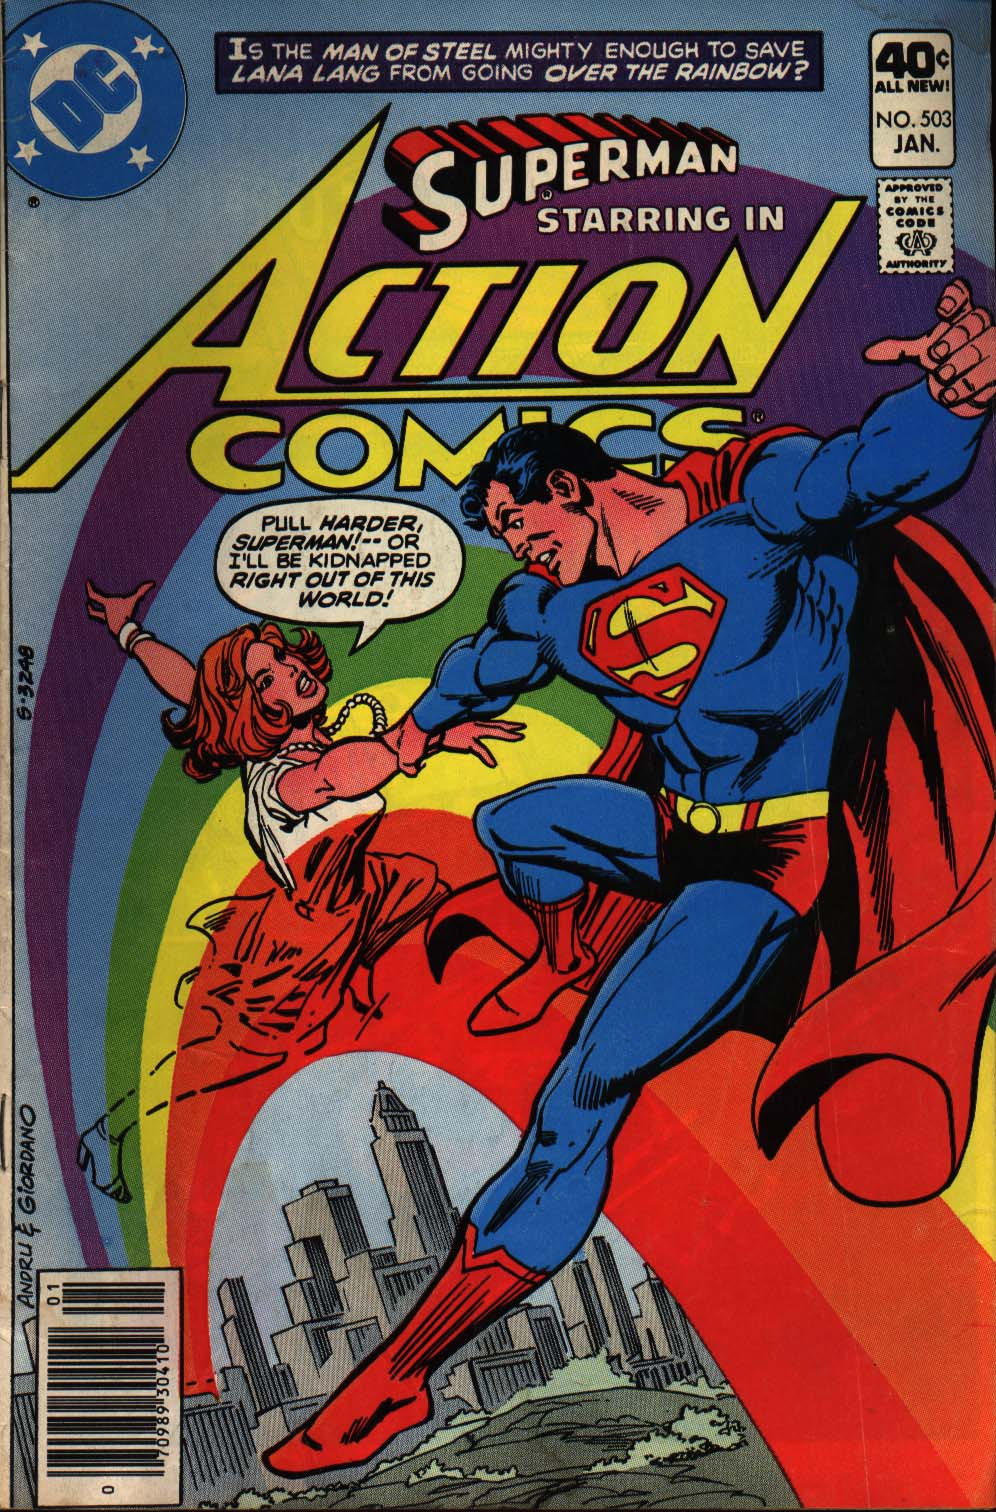 Read online Action Comics (1938) comic -  Issue #503 - 1